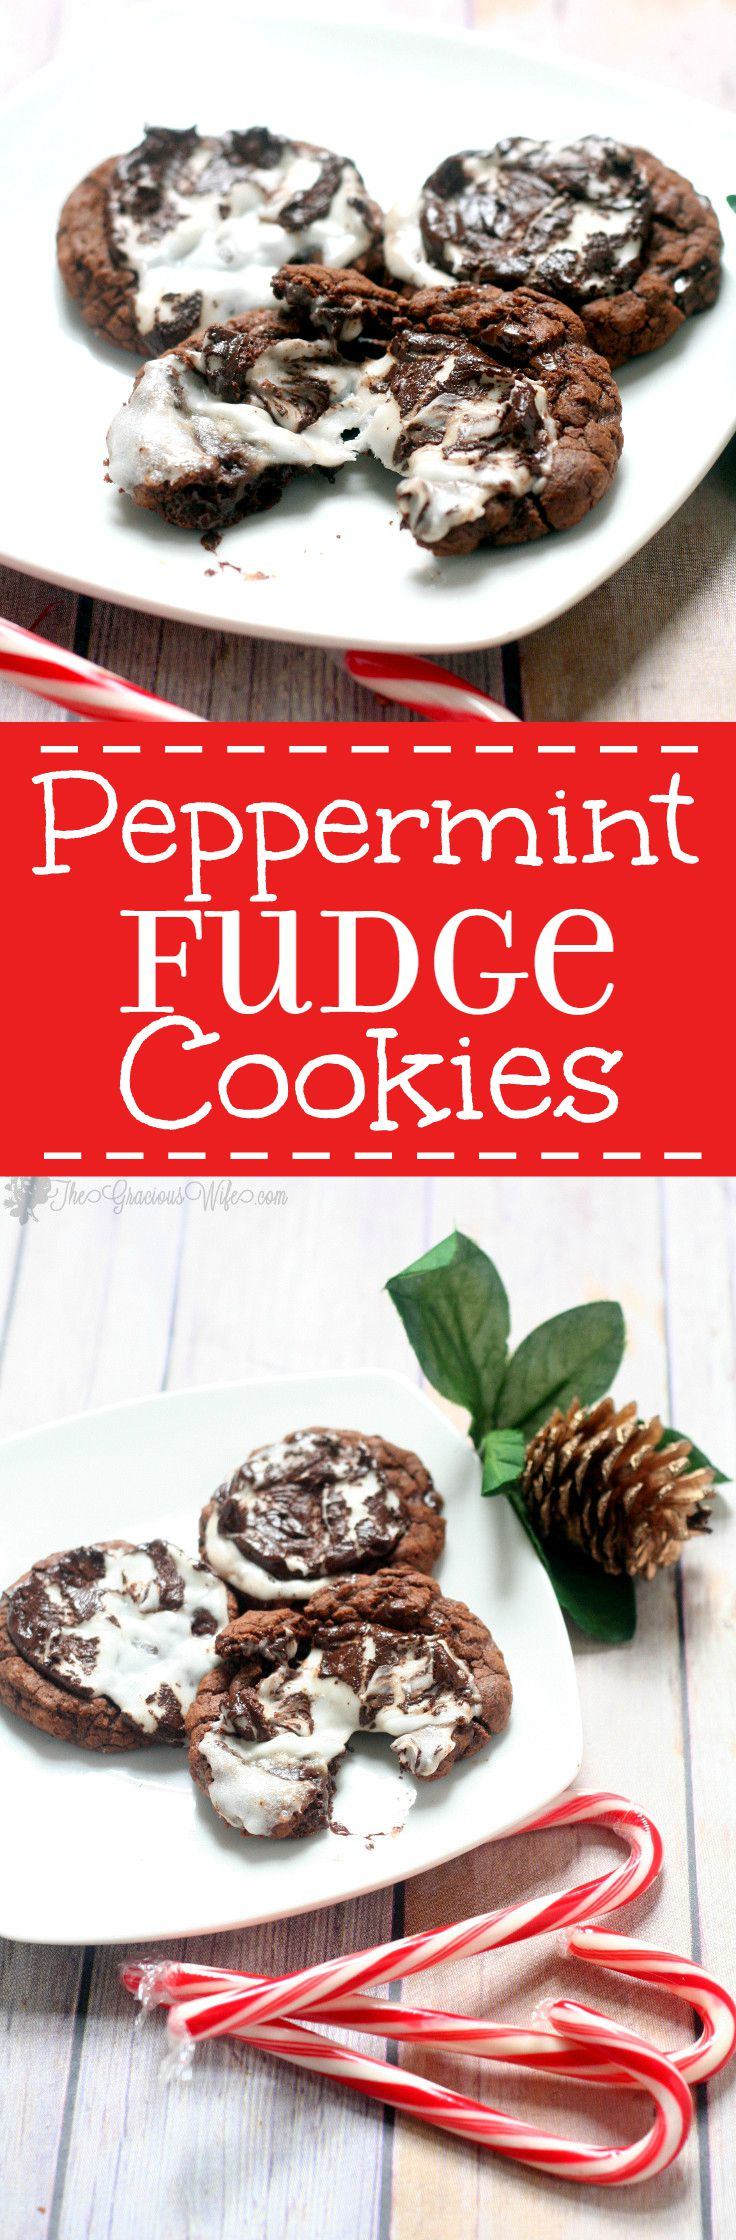 Peppermint Fudge Cookies | The Gracious Wife